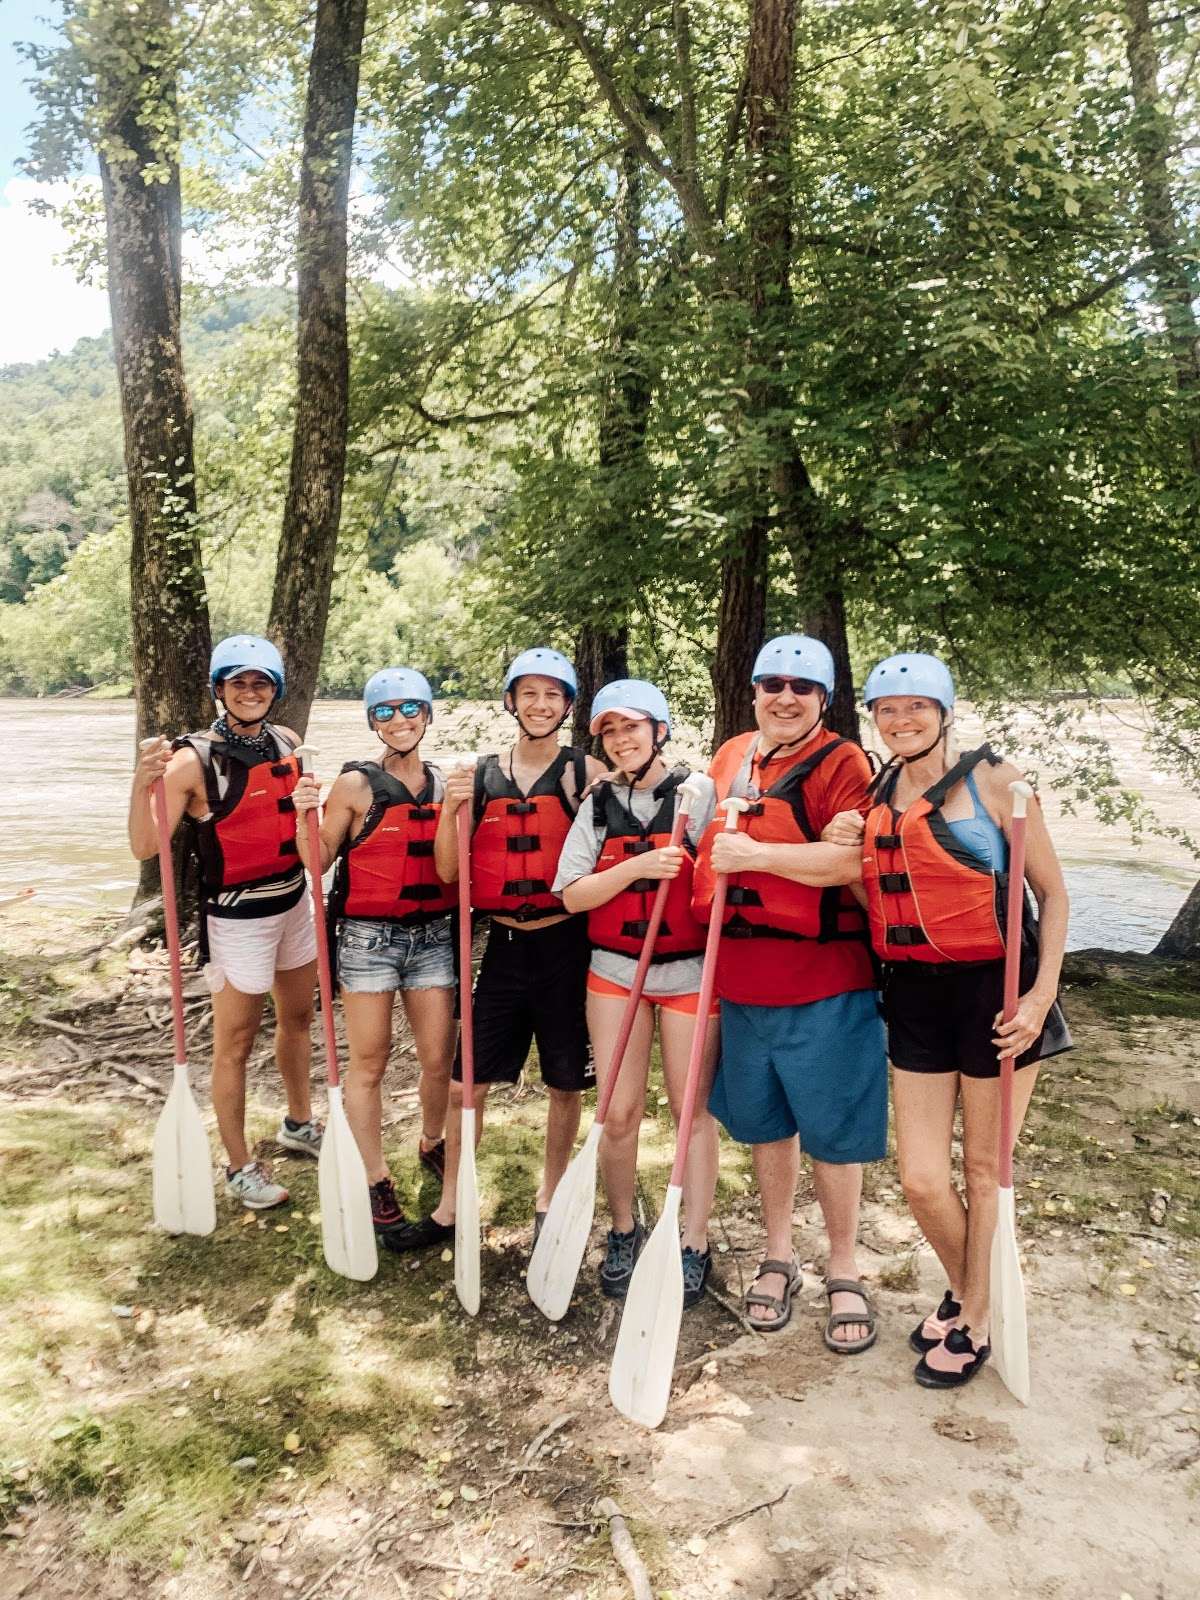 New volunteers Rae McMannis (far left) and Diane Sohl (far right) team up with IoH board member Tony Reid (second from right) to help make lasting memories with the Evans-Johnson family on the French Broad River!